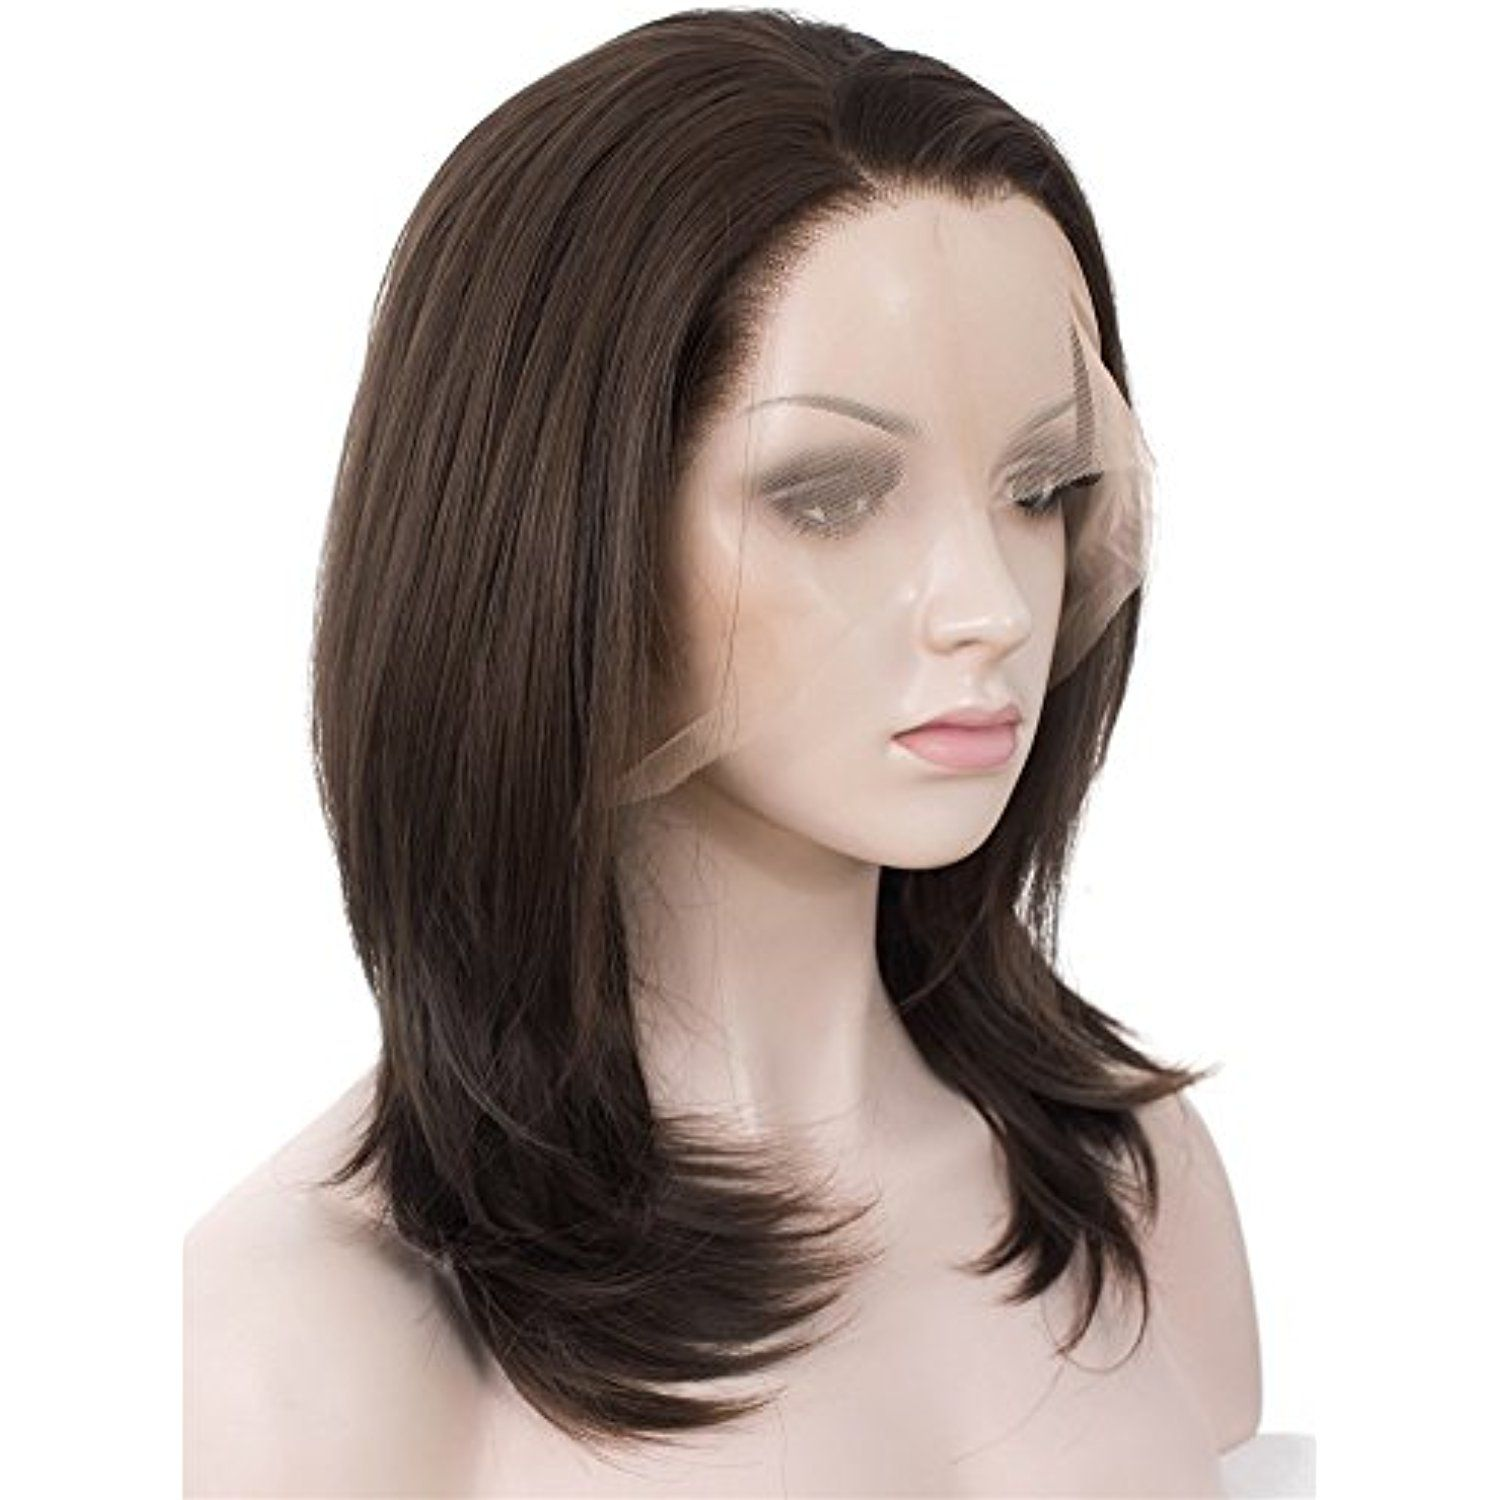 Boy hairstyle wigs imstyle shoulder length natural straight lace front wig synthetic